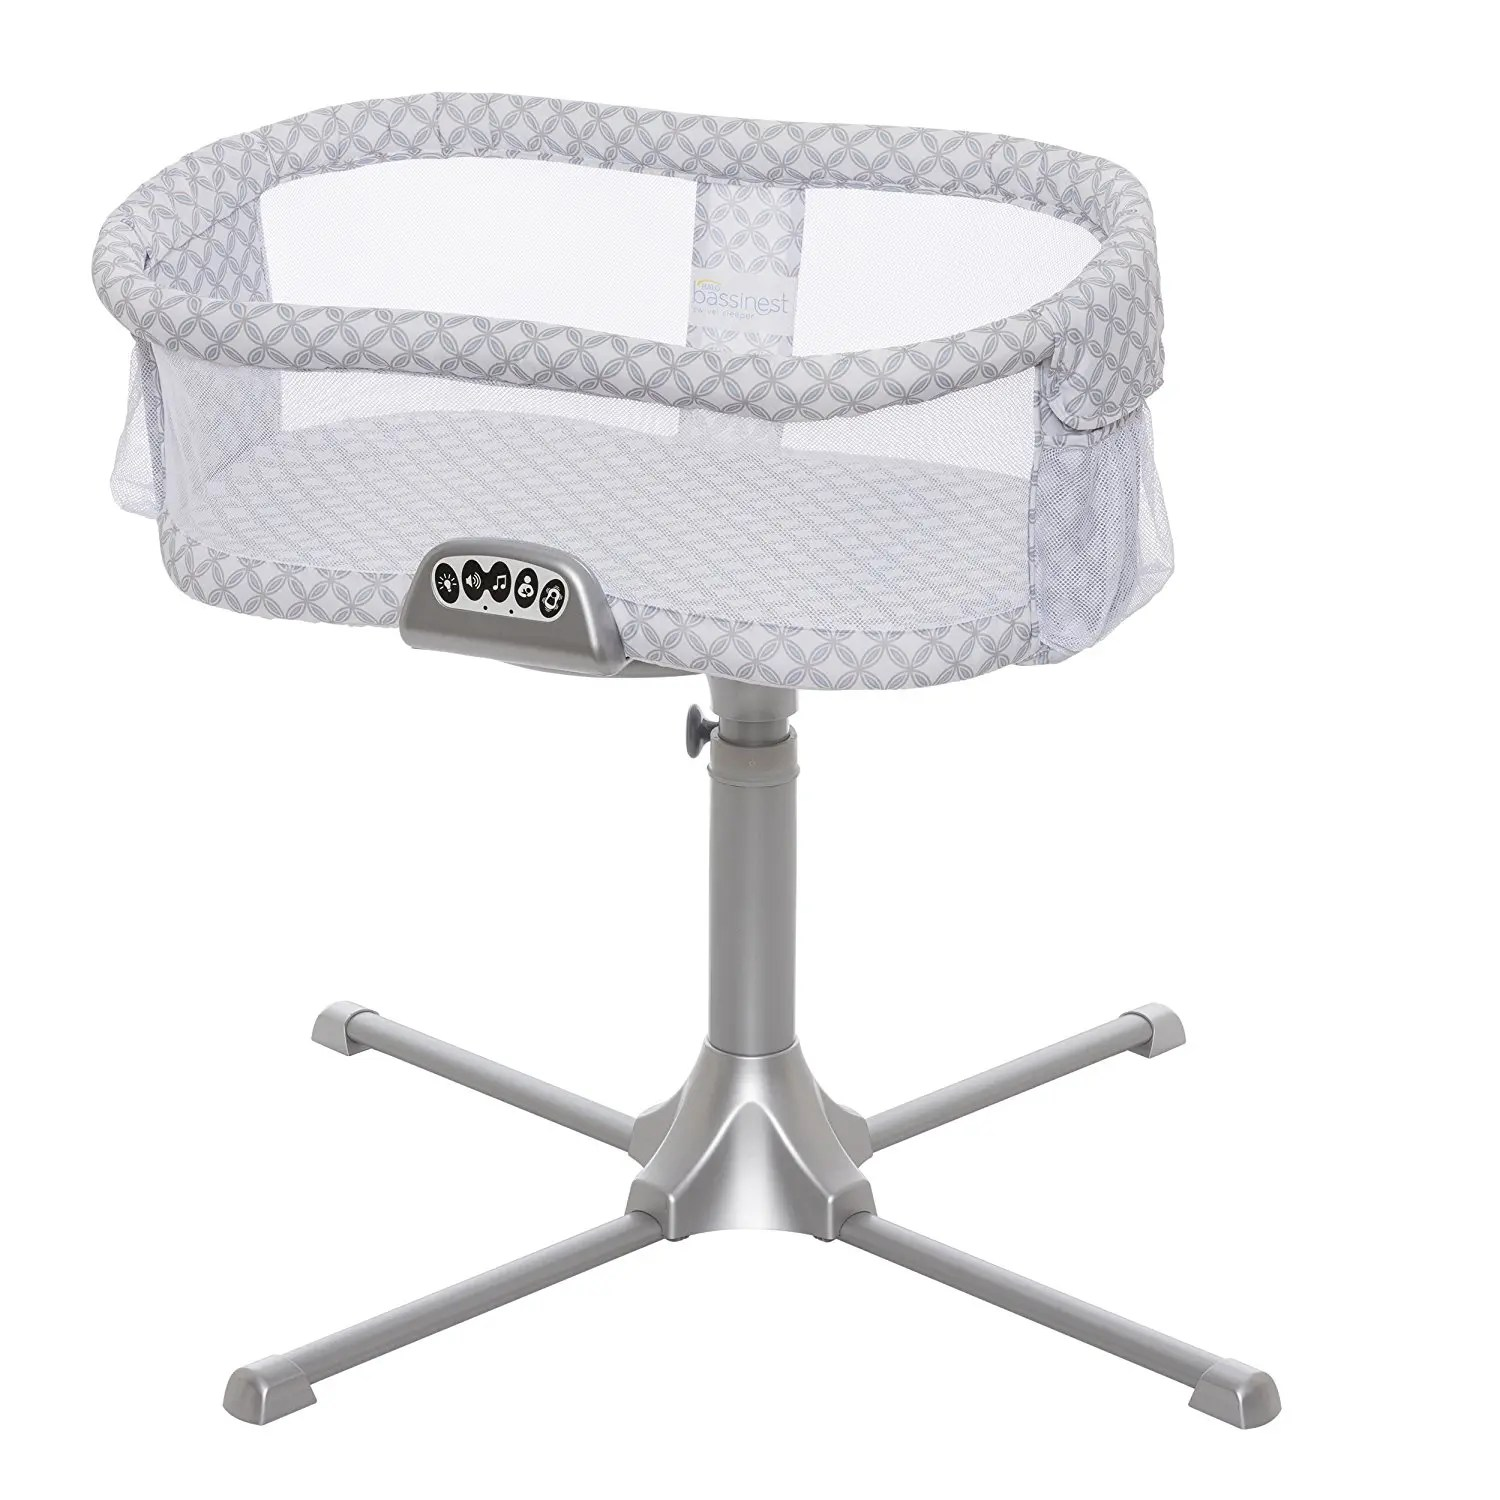 baby sleeper chair cover hire invercargill cribs and nursery essentials guides reviews